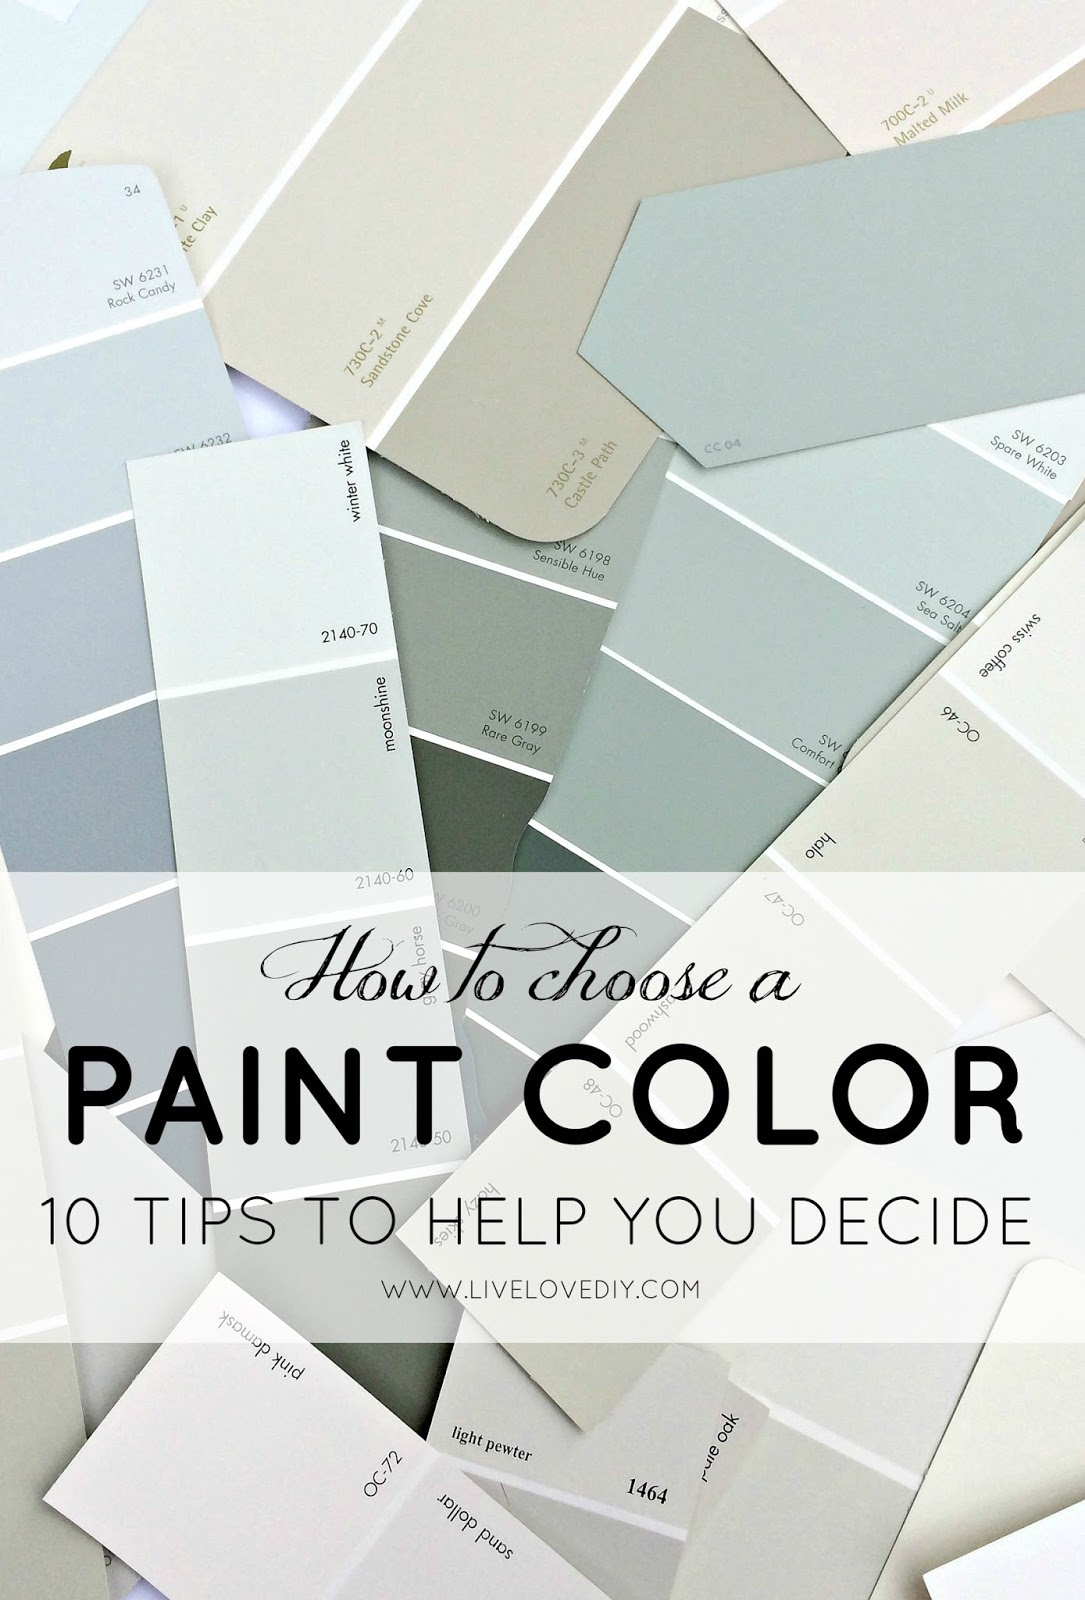 livelovediy: how to choose a paint color: 10 tips to help you decide